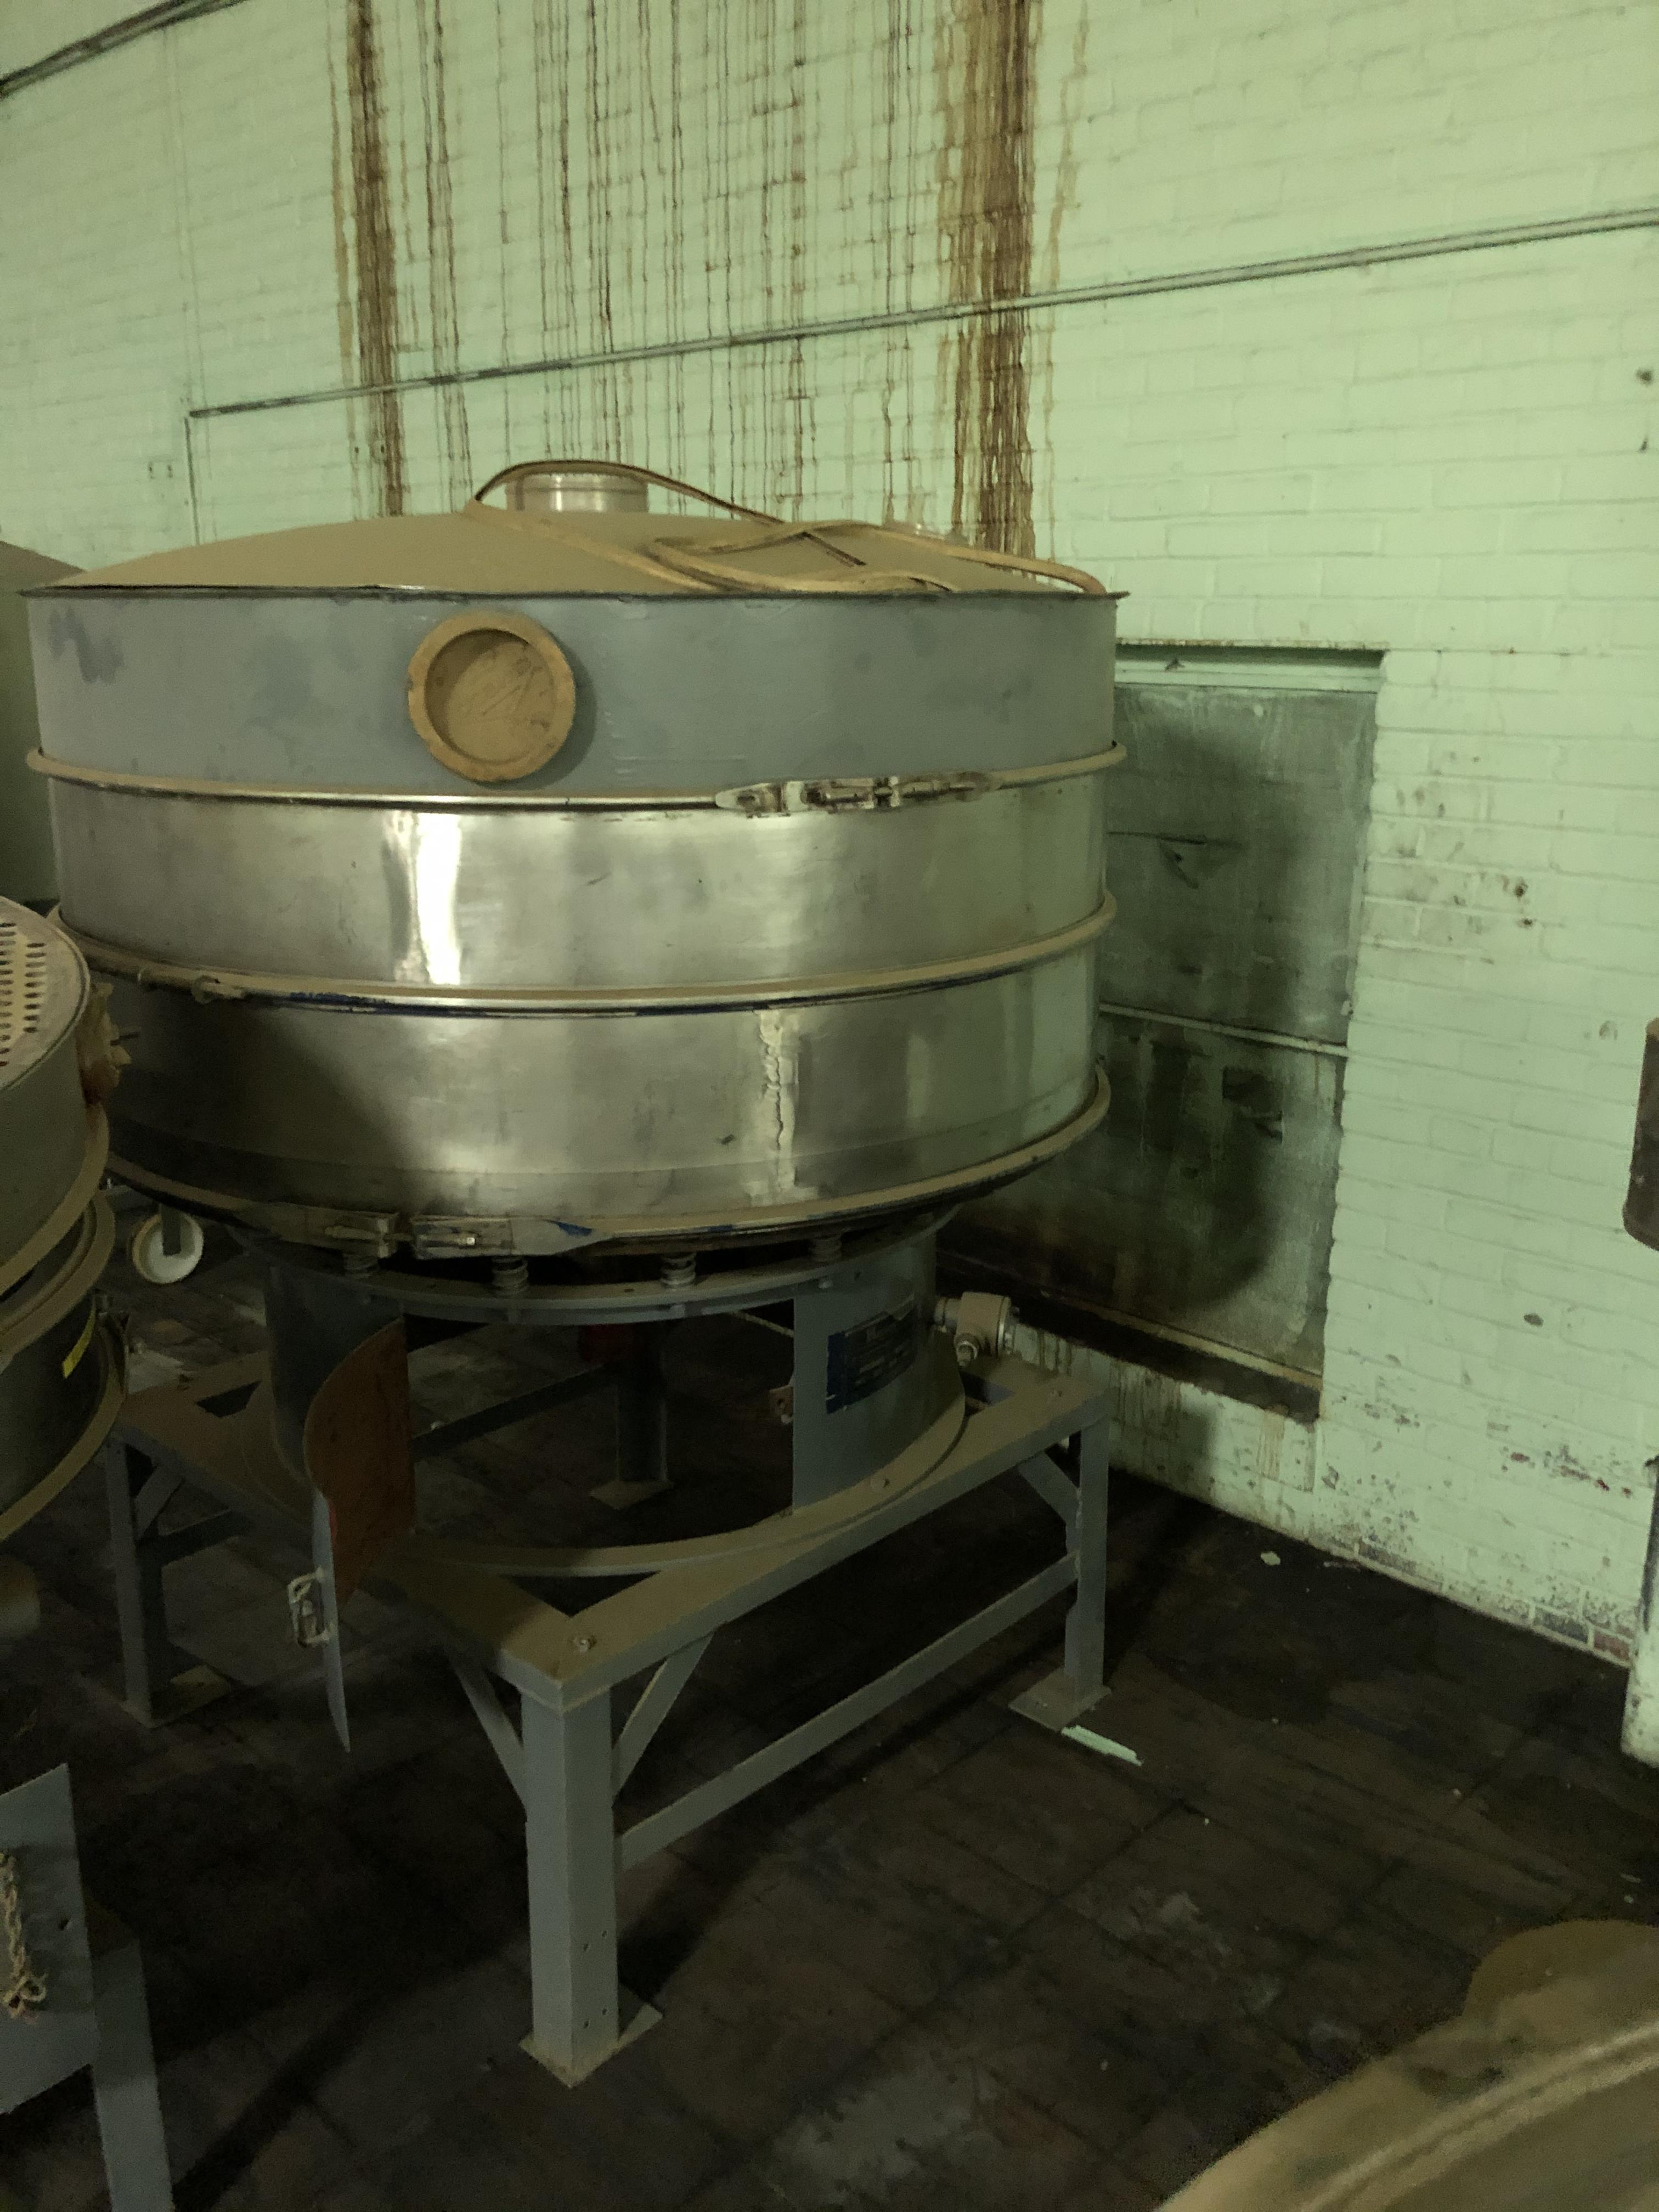 "Kason Model K-60-1-SS Vibratory Screen Separator, 60"" Diameter, SN 4020, RIGGING FEE - $100 - Image 3 of 3"